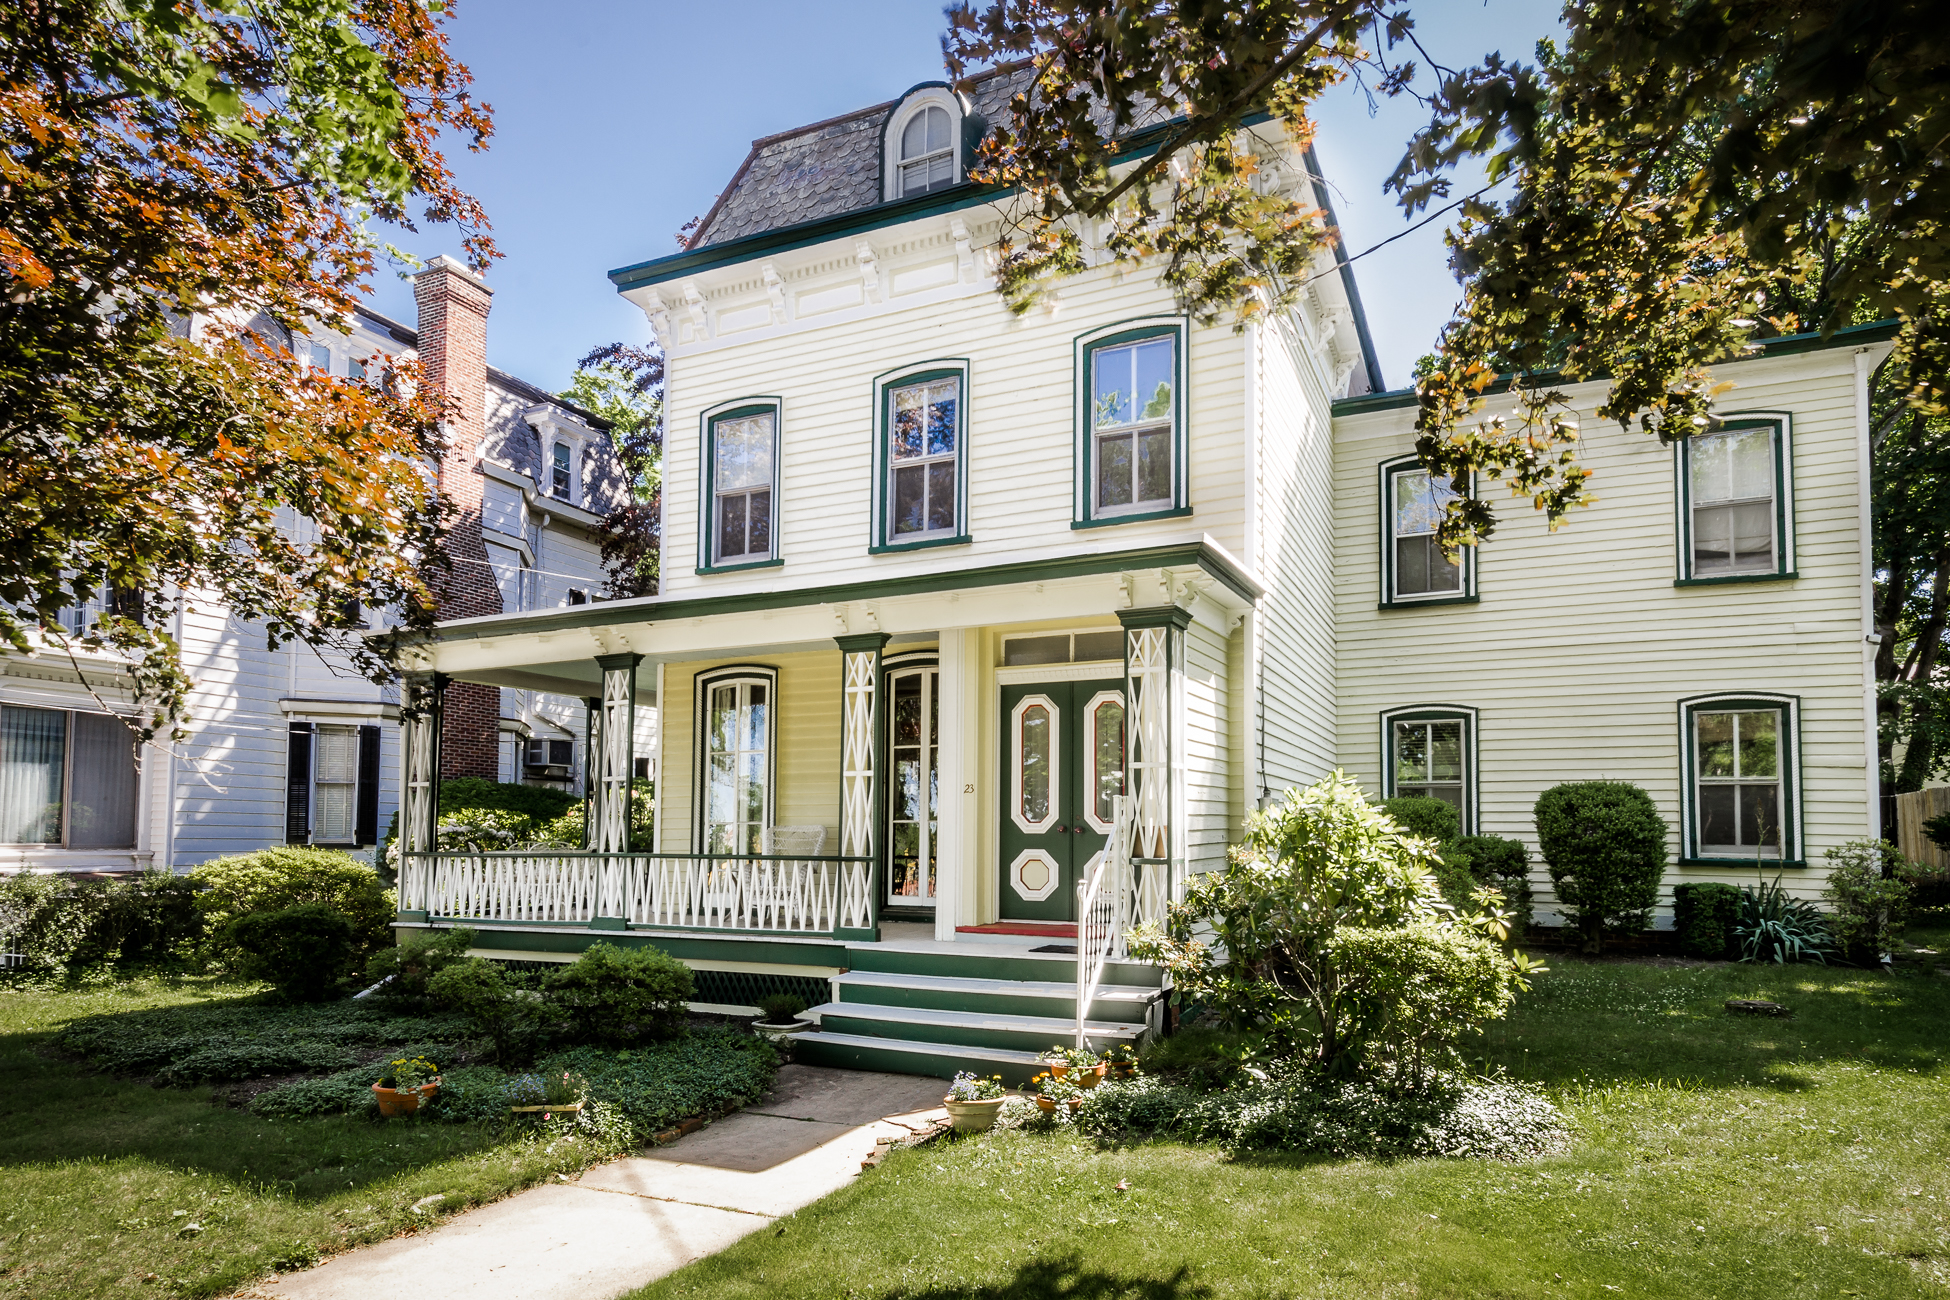 Single Family Home for Sale at Capturing All The Grace Of Yesteryear 23 South Adelaide Avenue Highland Park, New Jersey 08904 United States